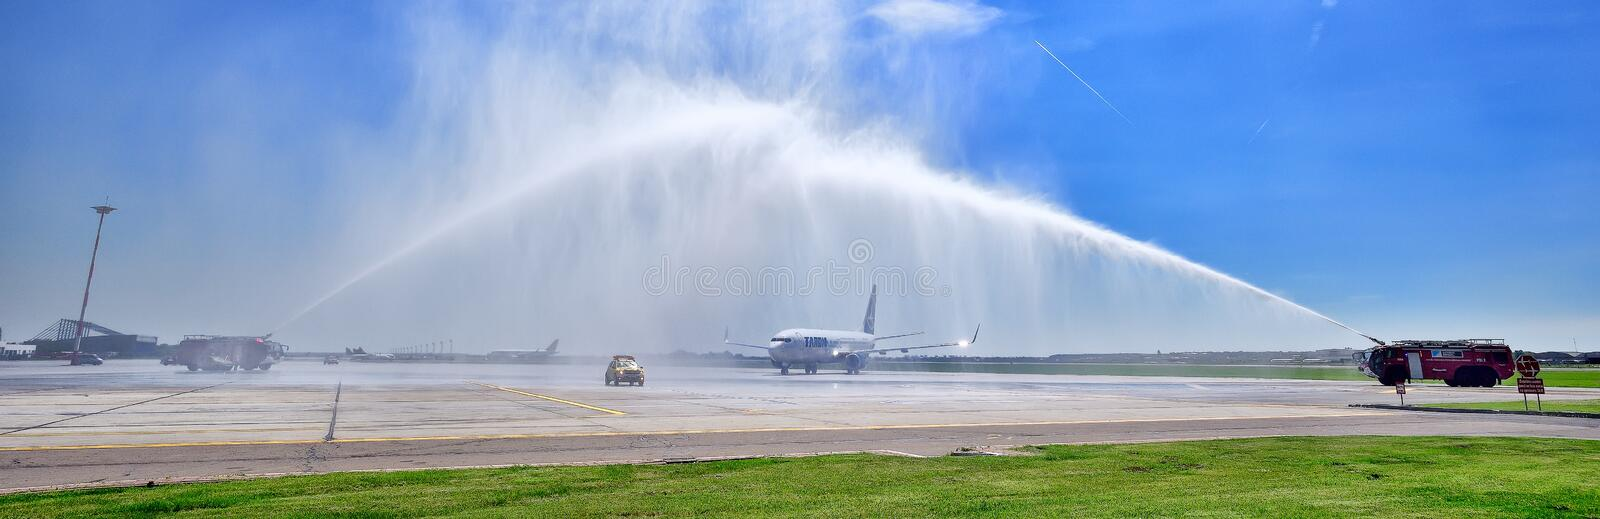 Tarom airplane first landing in Otopeni airport , water jets for inauguration royalty free stock image